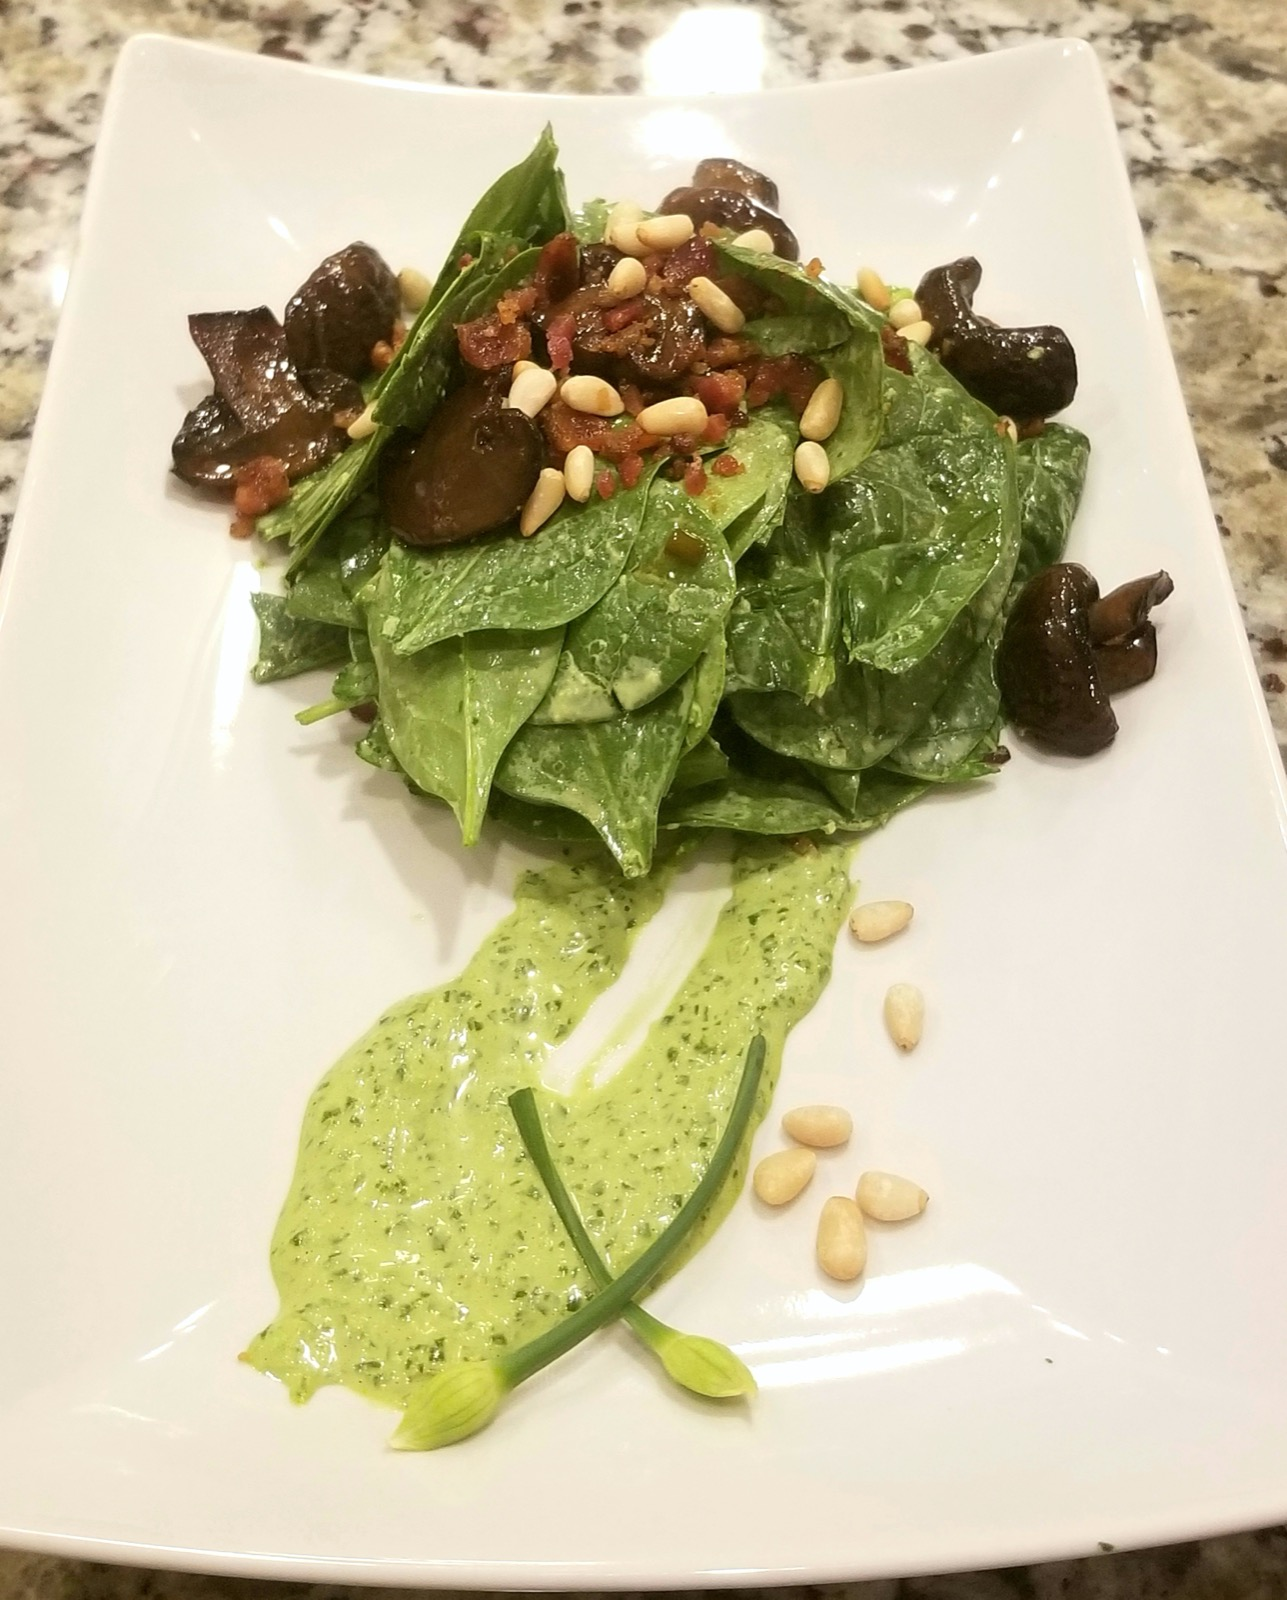 Our version of a Chop's steakhouse warm spinach salad